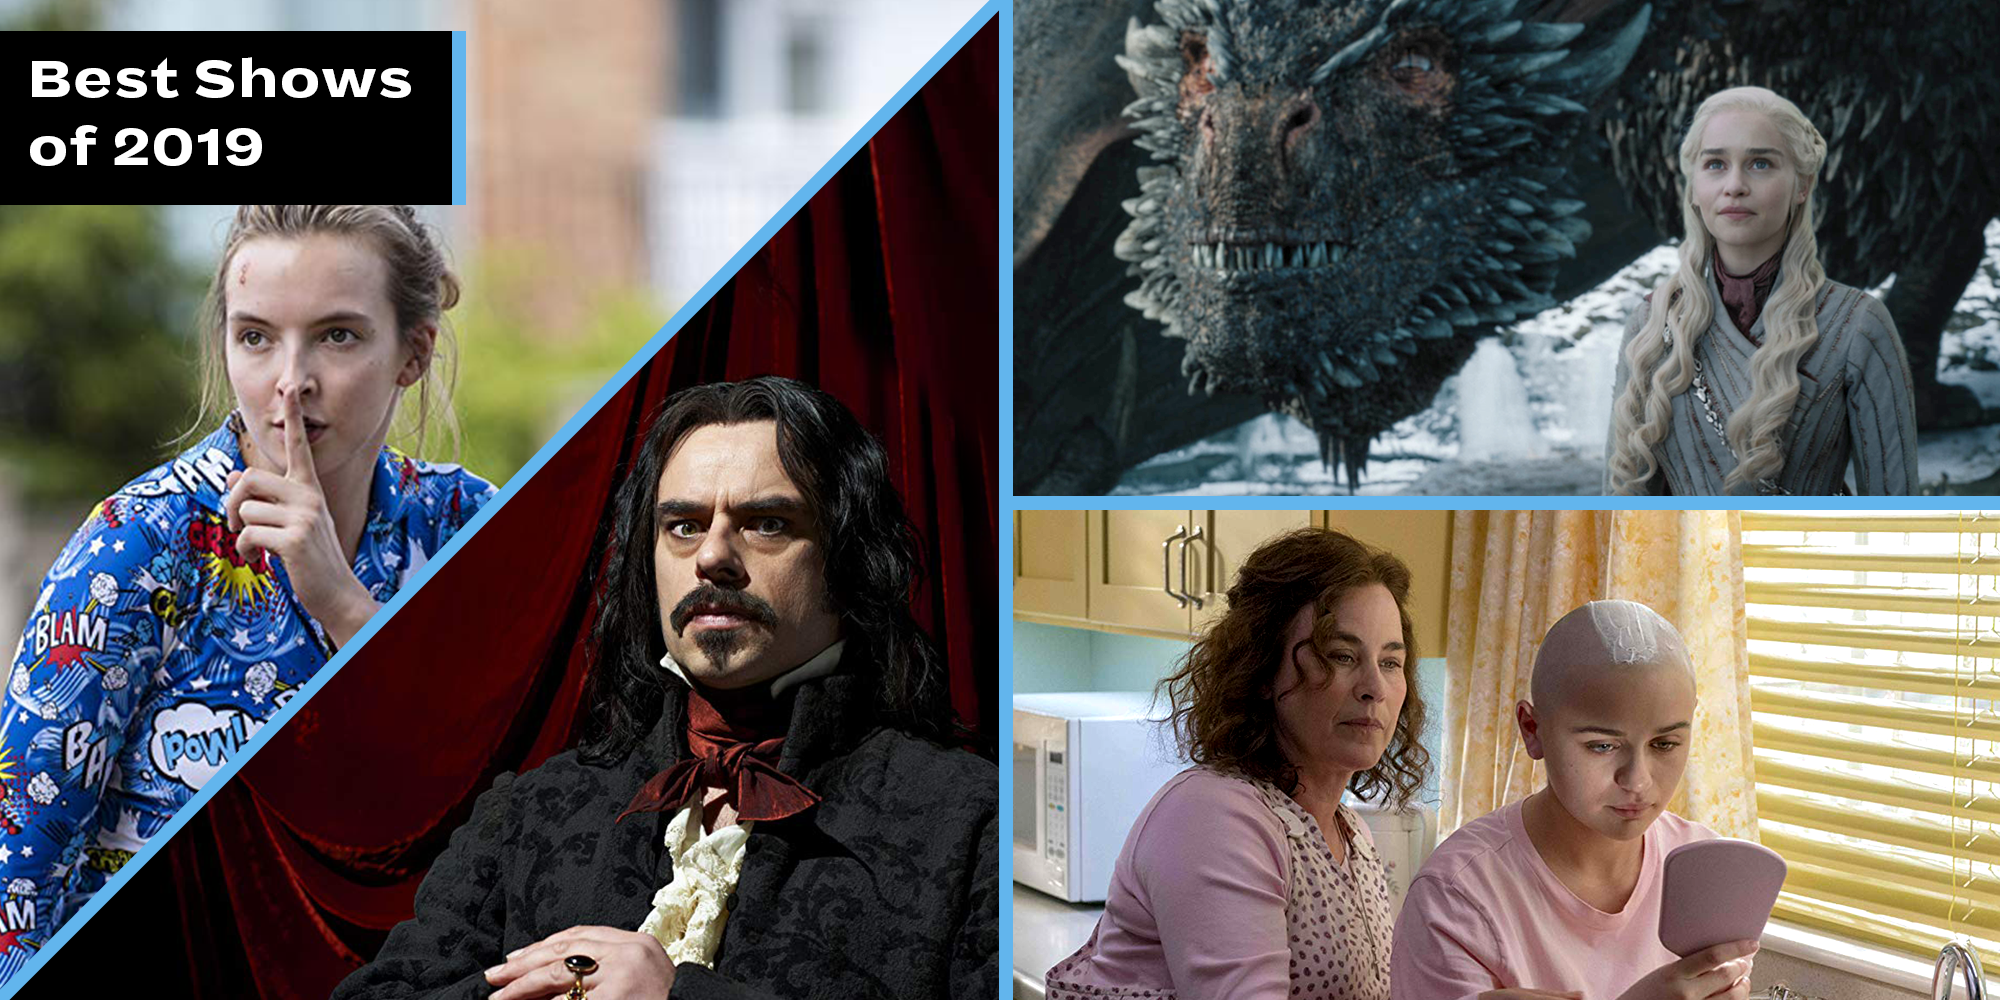 15 Best TV Shows of 2019 (So Far) - Top New Upcoming TV Series 2019